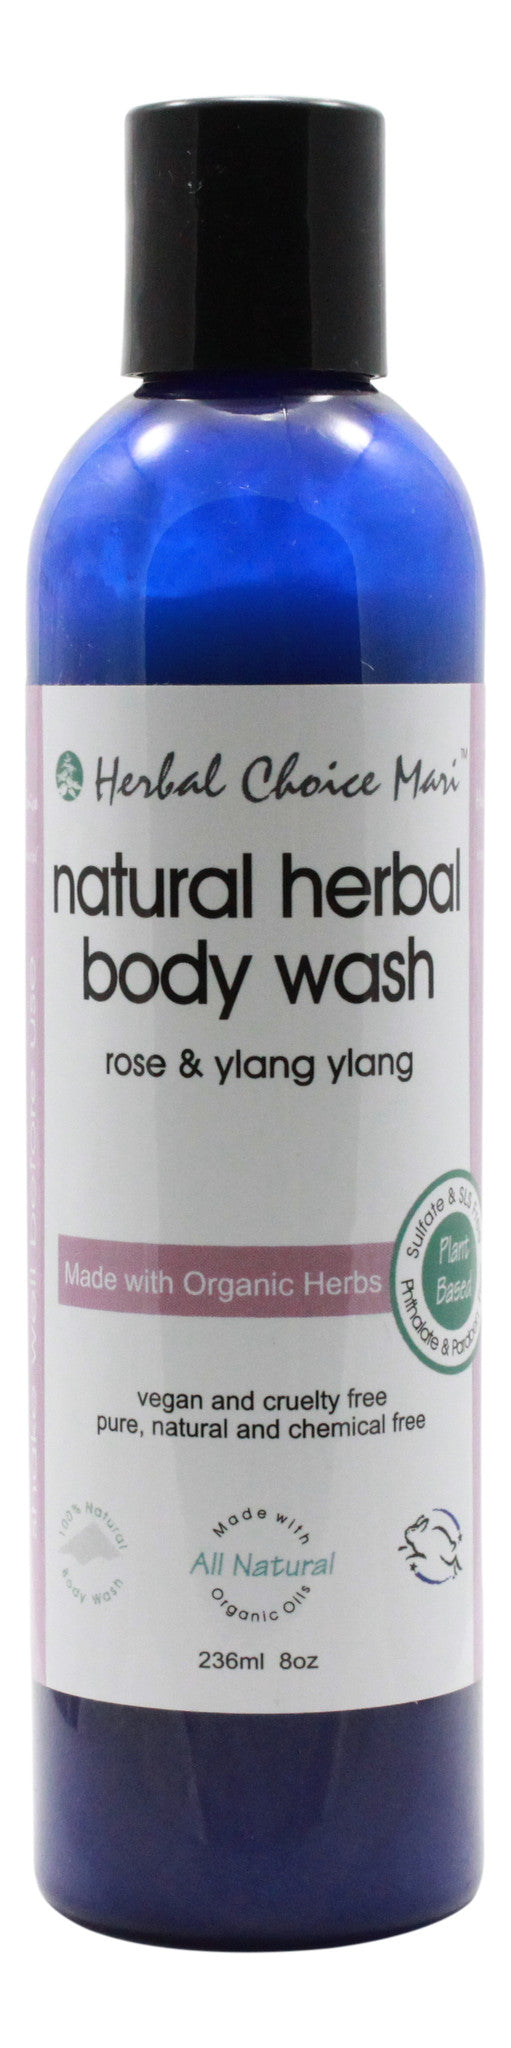 Natural Herbal Body Wash - Rose & Y/Yang - 8 oz Bottle - Front